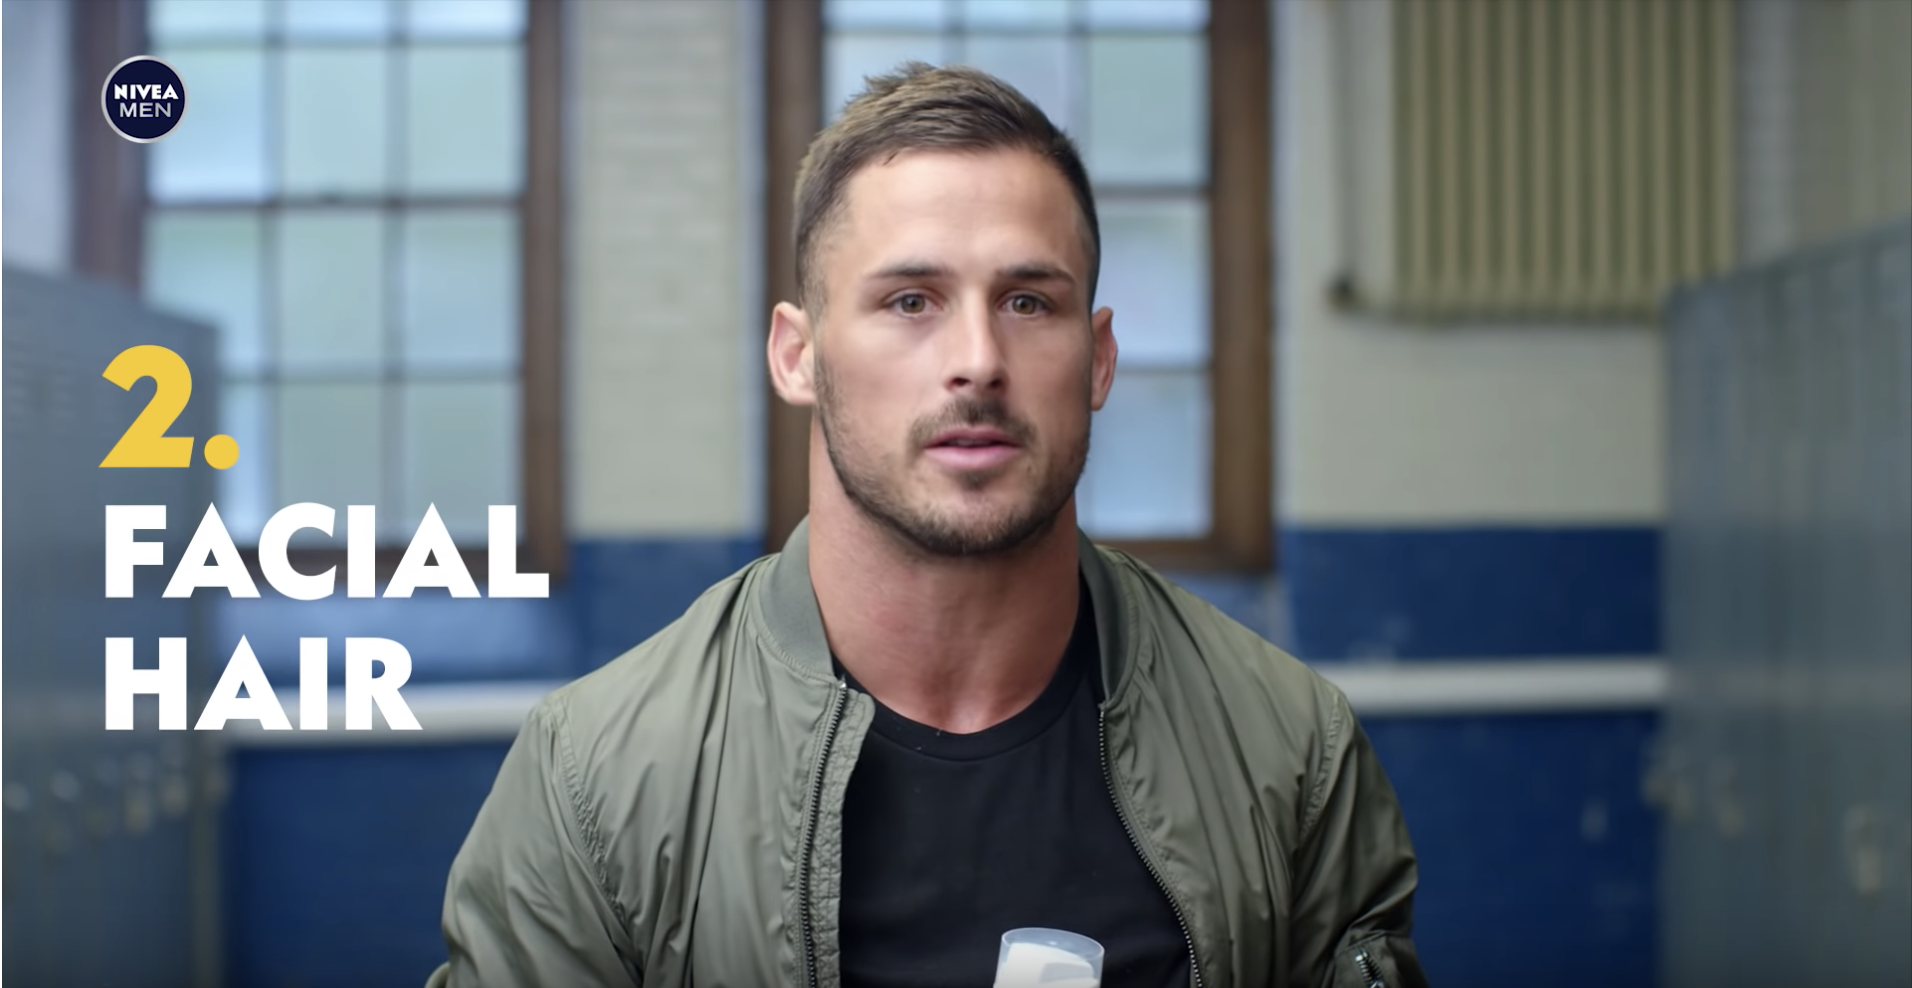 This is a screen grab from a spot we created for Nivea Men featuring Detroit Lions wide receiver Danny Amendola.